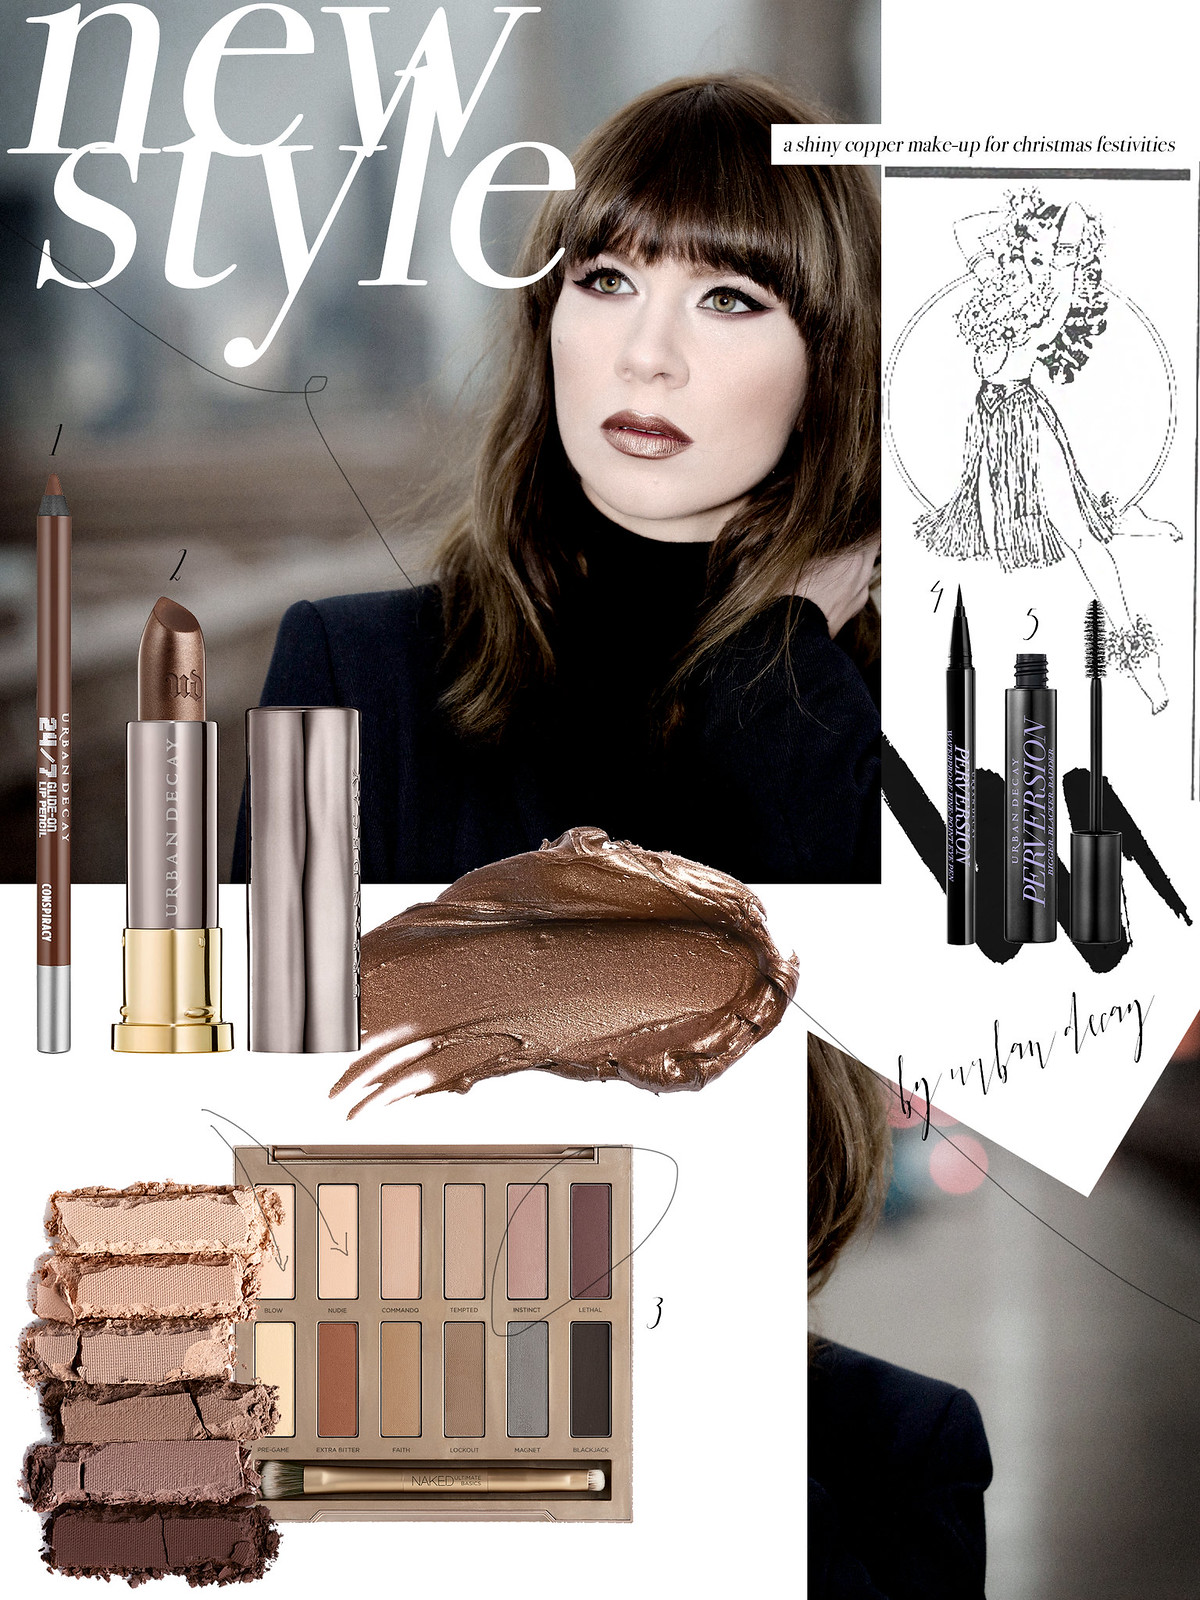 urban decay new york city brooklin bridge beauty with an edge magazine style trends collage beautyblogger lipstick christmas festive makeup styling pink brown metallic cats & dogs beautyblog ricarda schernus bangs brunette berlin fashionblogger 2